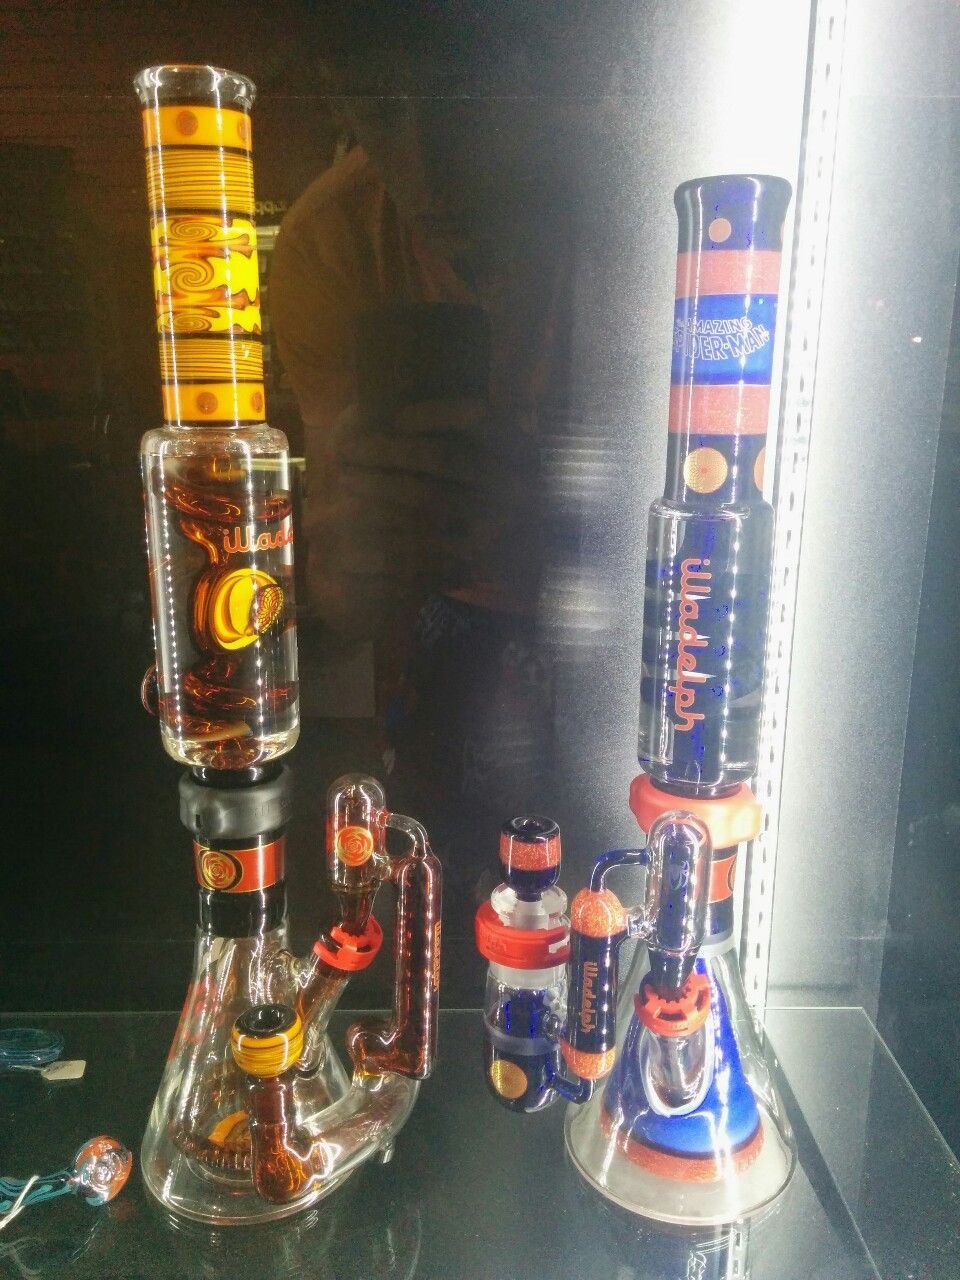 Sick ass bongs